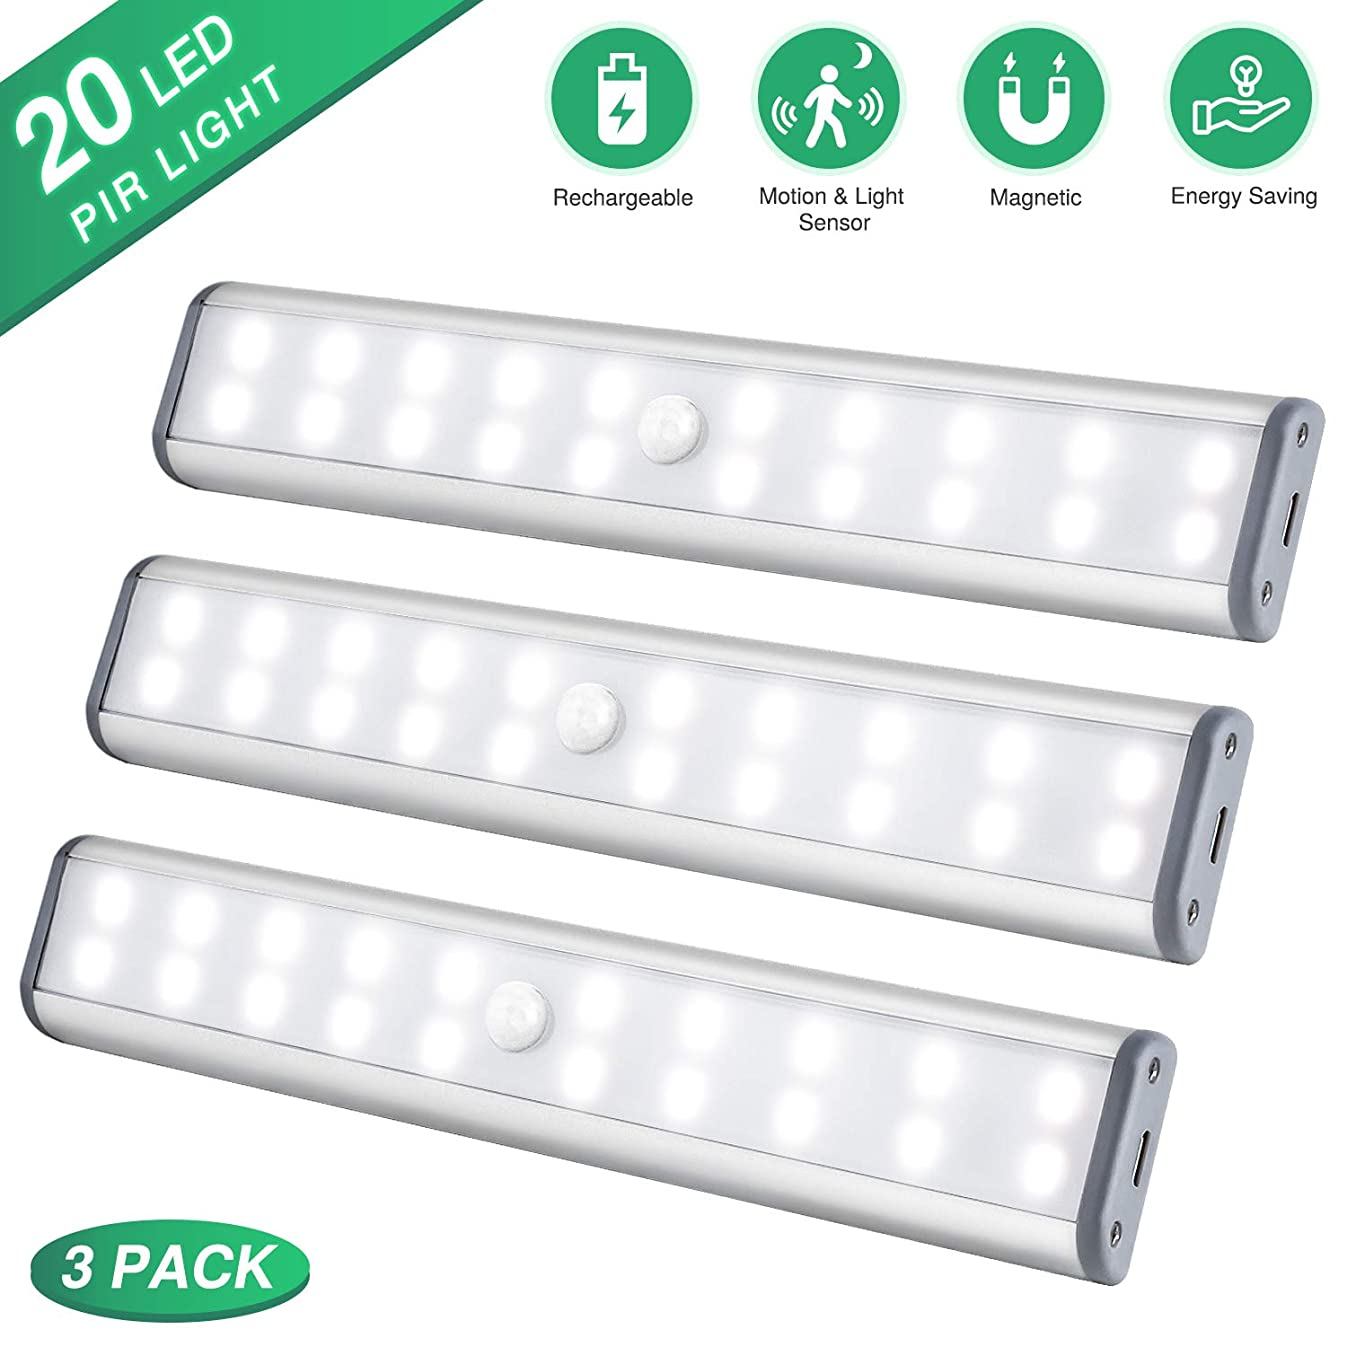 Under Cabinet Lighting, Closet Light 20 LEDs 3 Packs, Wireless Rechargeable Cabinet Lights, Magnetic Under Counter Lighting, LED Motion Sensor Night Light for Closet Cabinet Wardrobe Stairs (White)